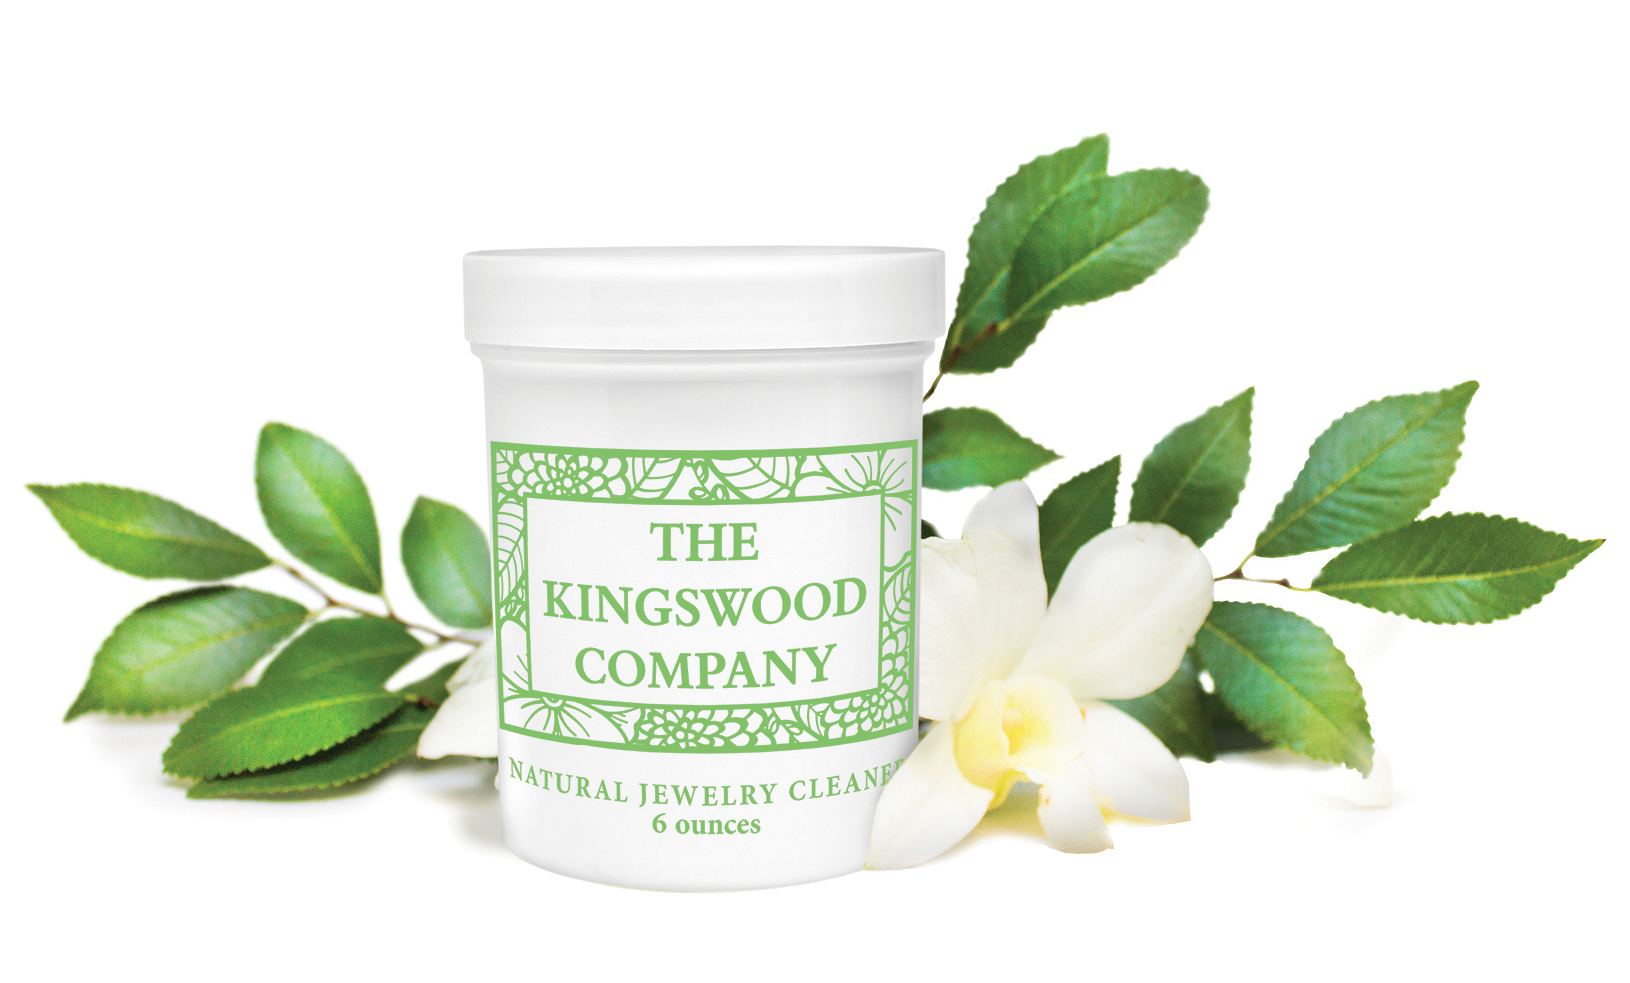 jck0216_tool_kingswood5.jpg